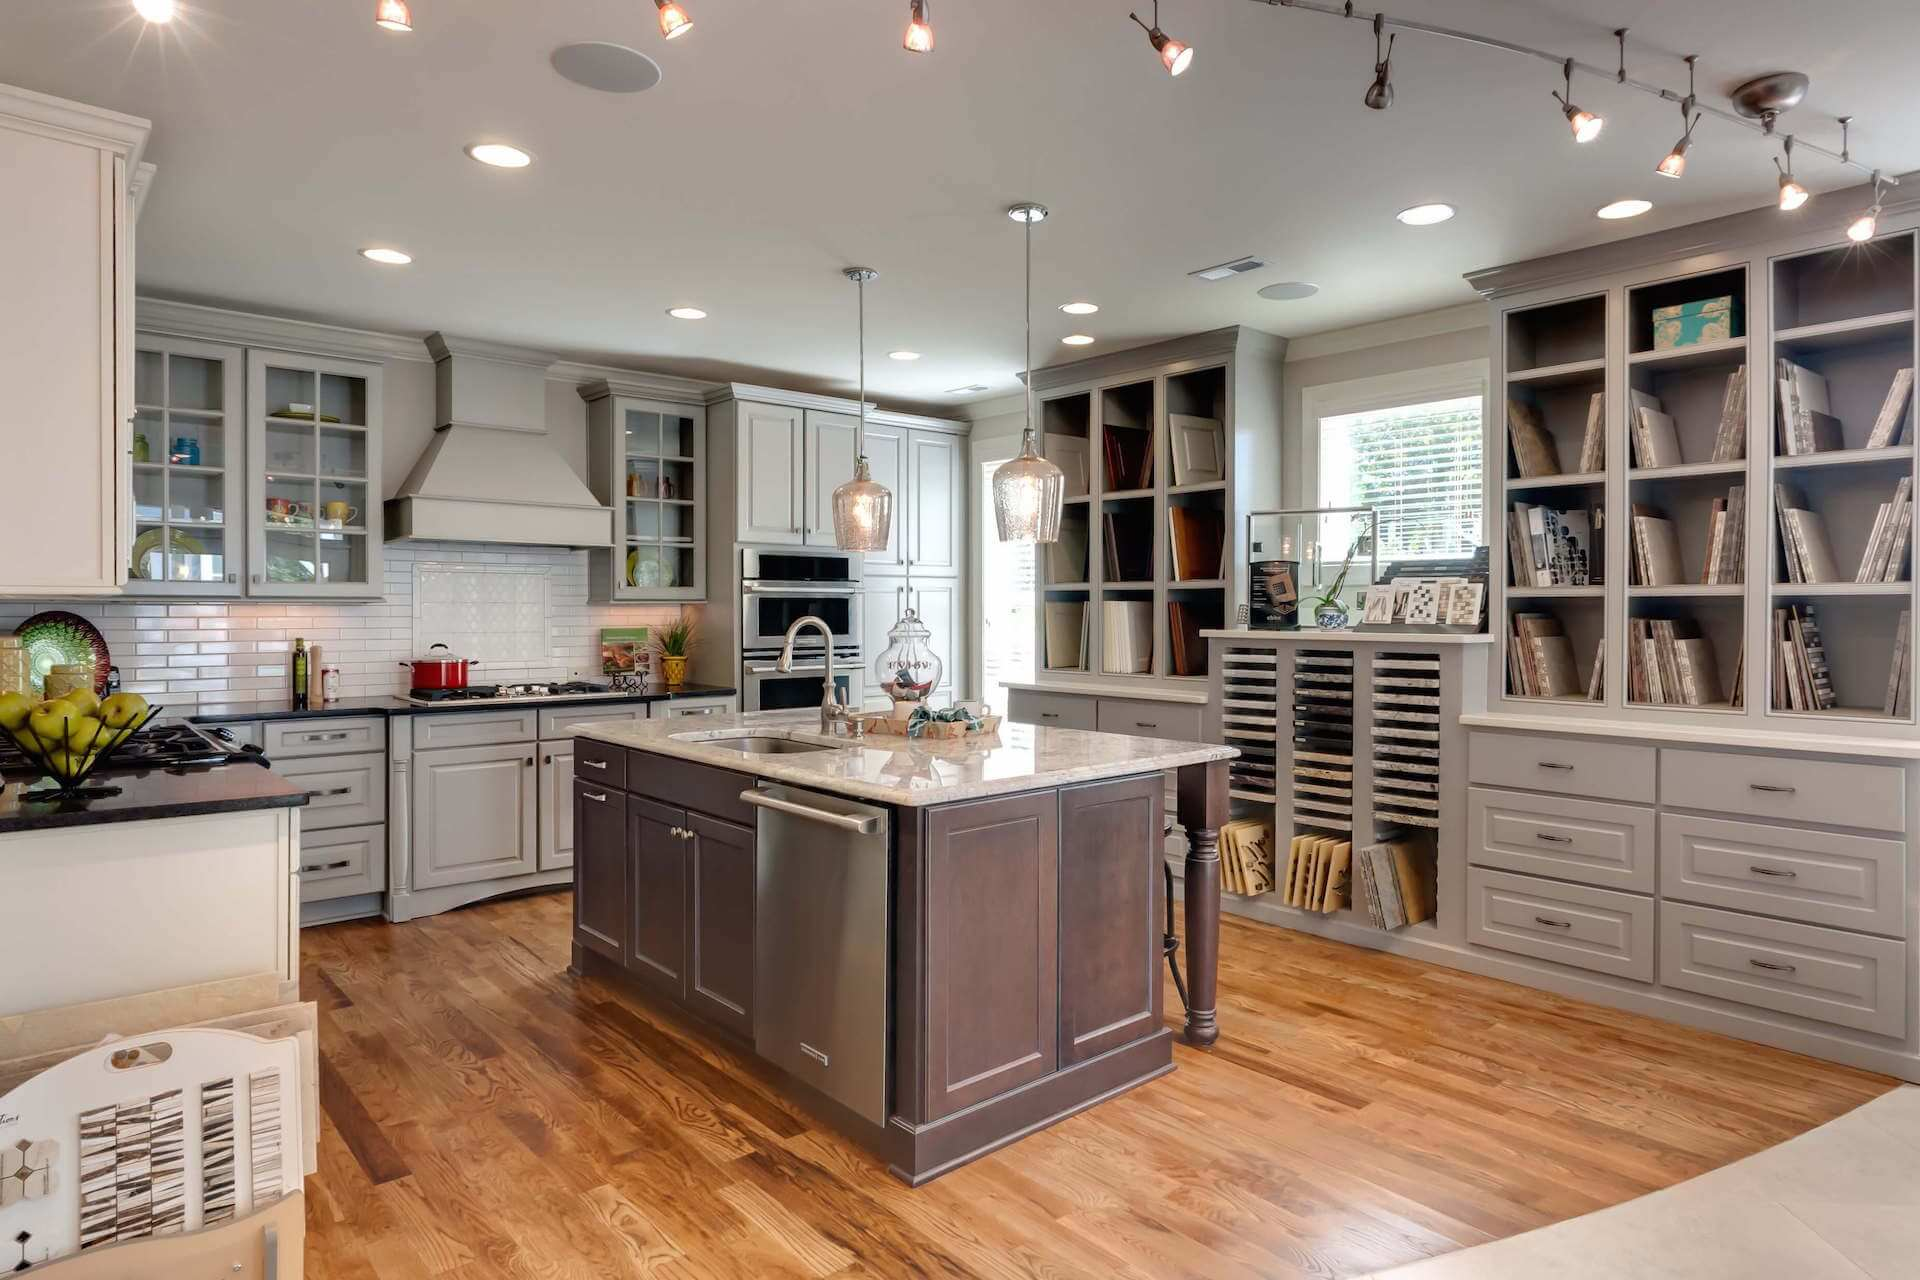 raleigh custom builders | homesdickerson